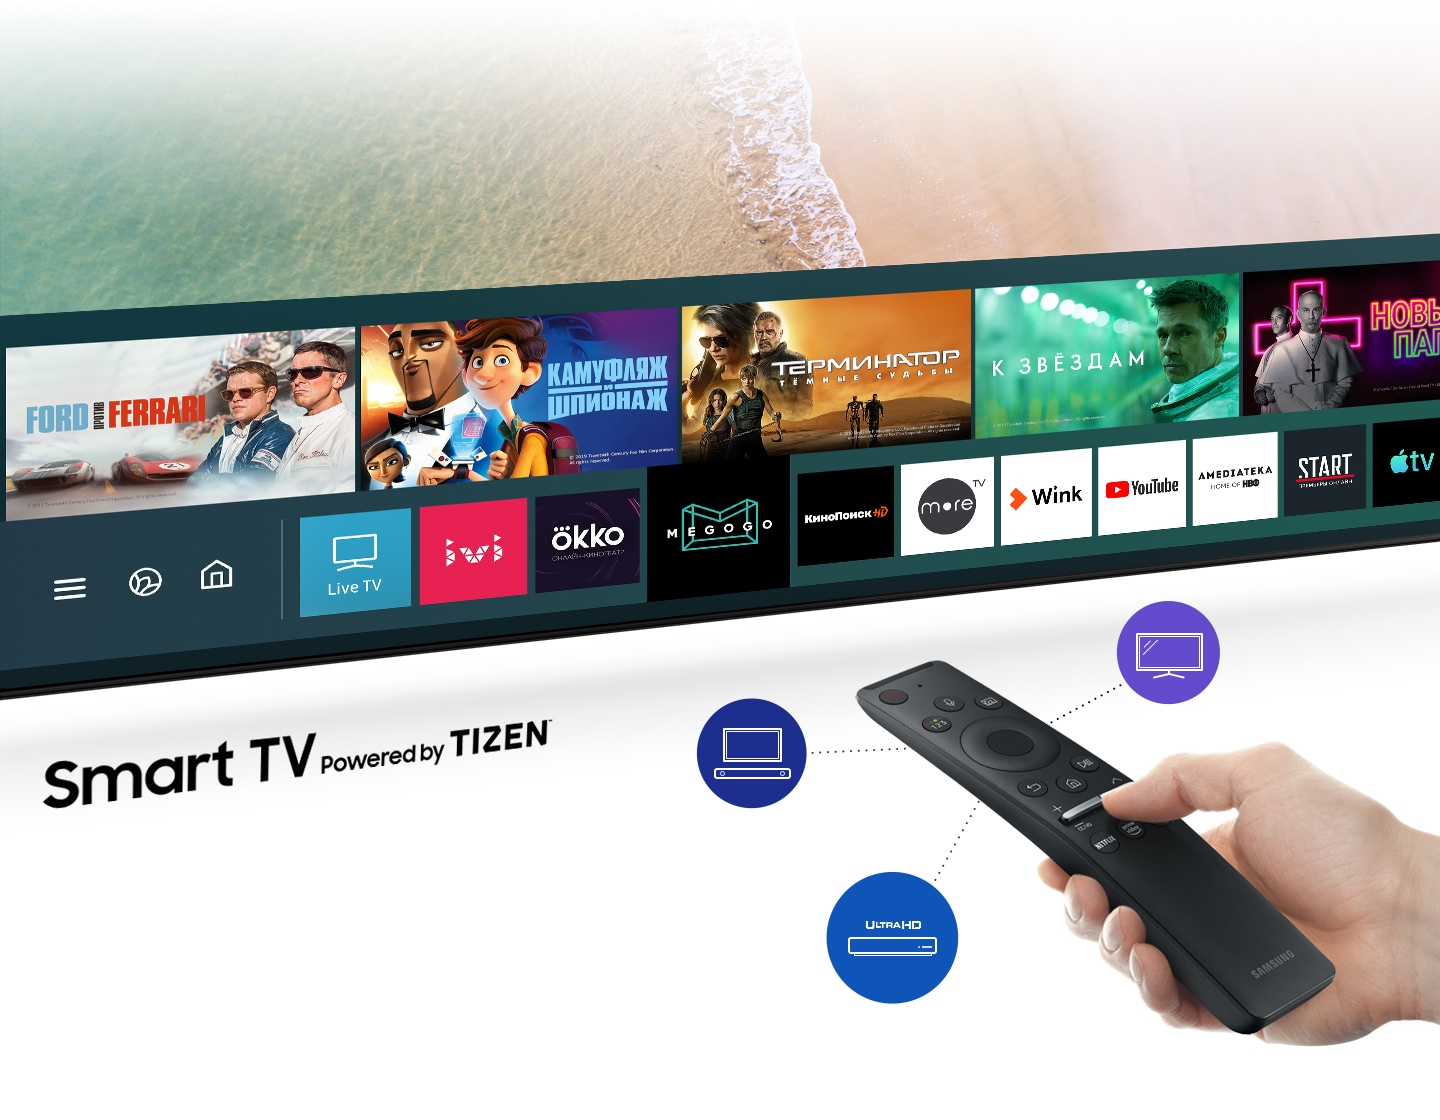 Find a variety of content with one remote (US)